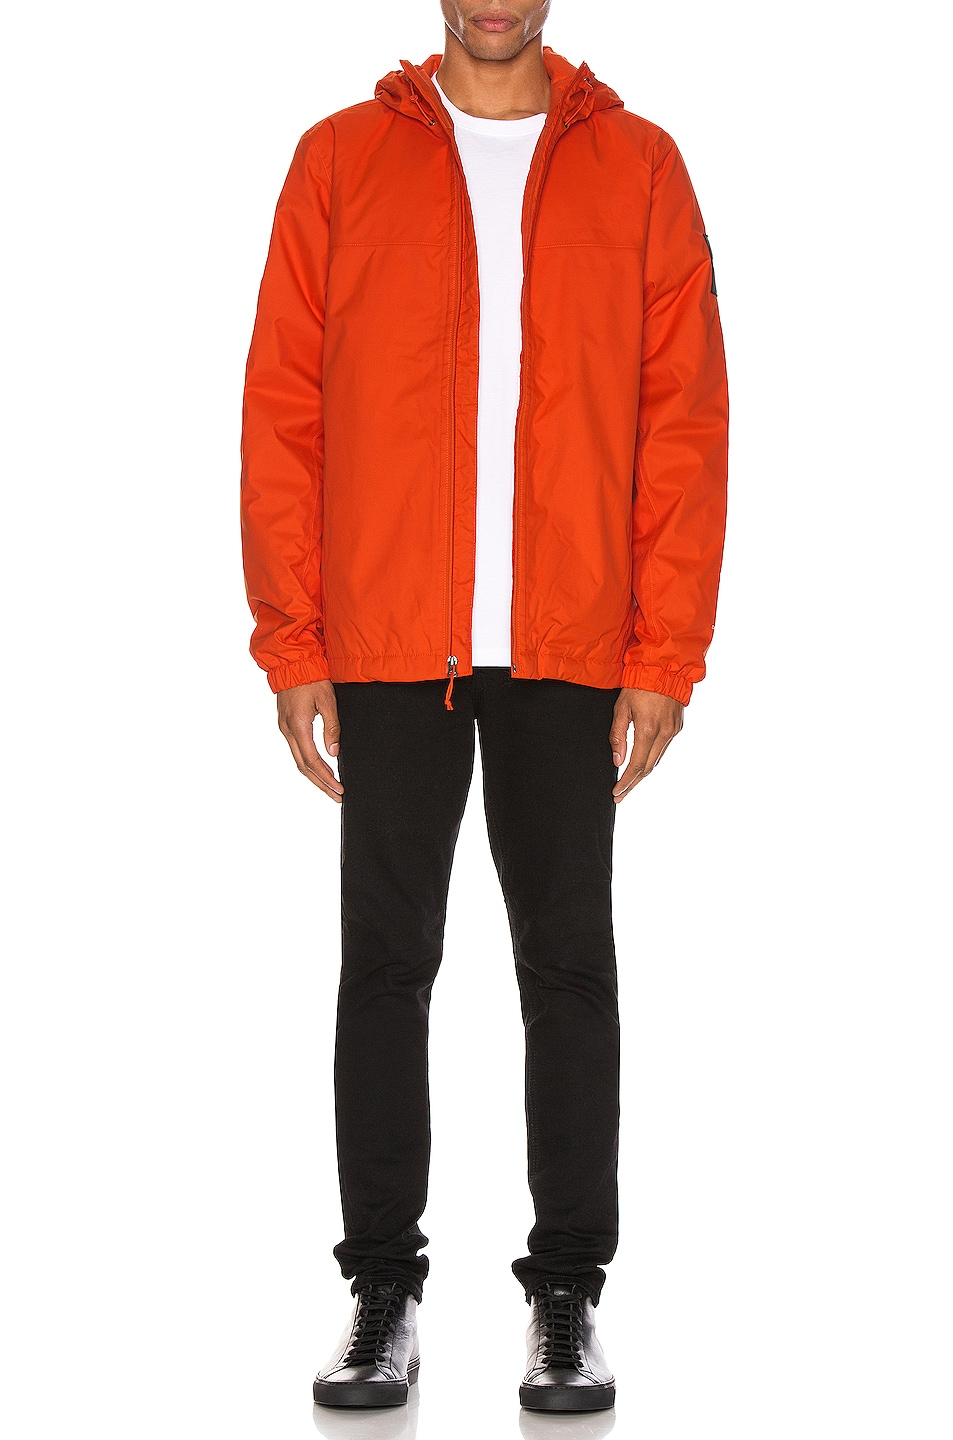 Image 6 of The North Face Black Box Ins Mountain Q Jacket in Tangerine Tango